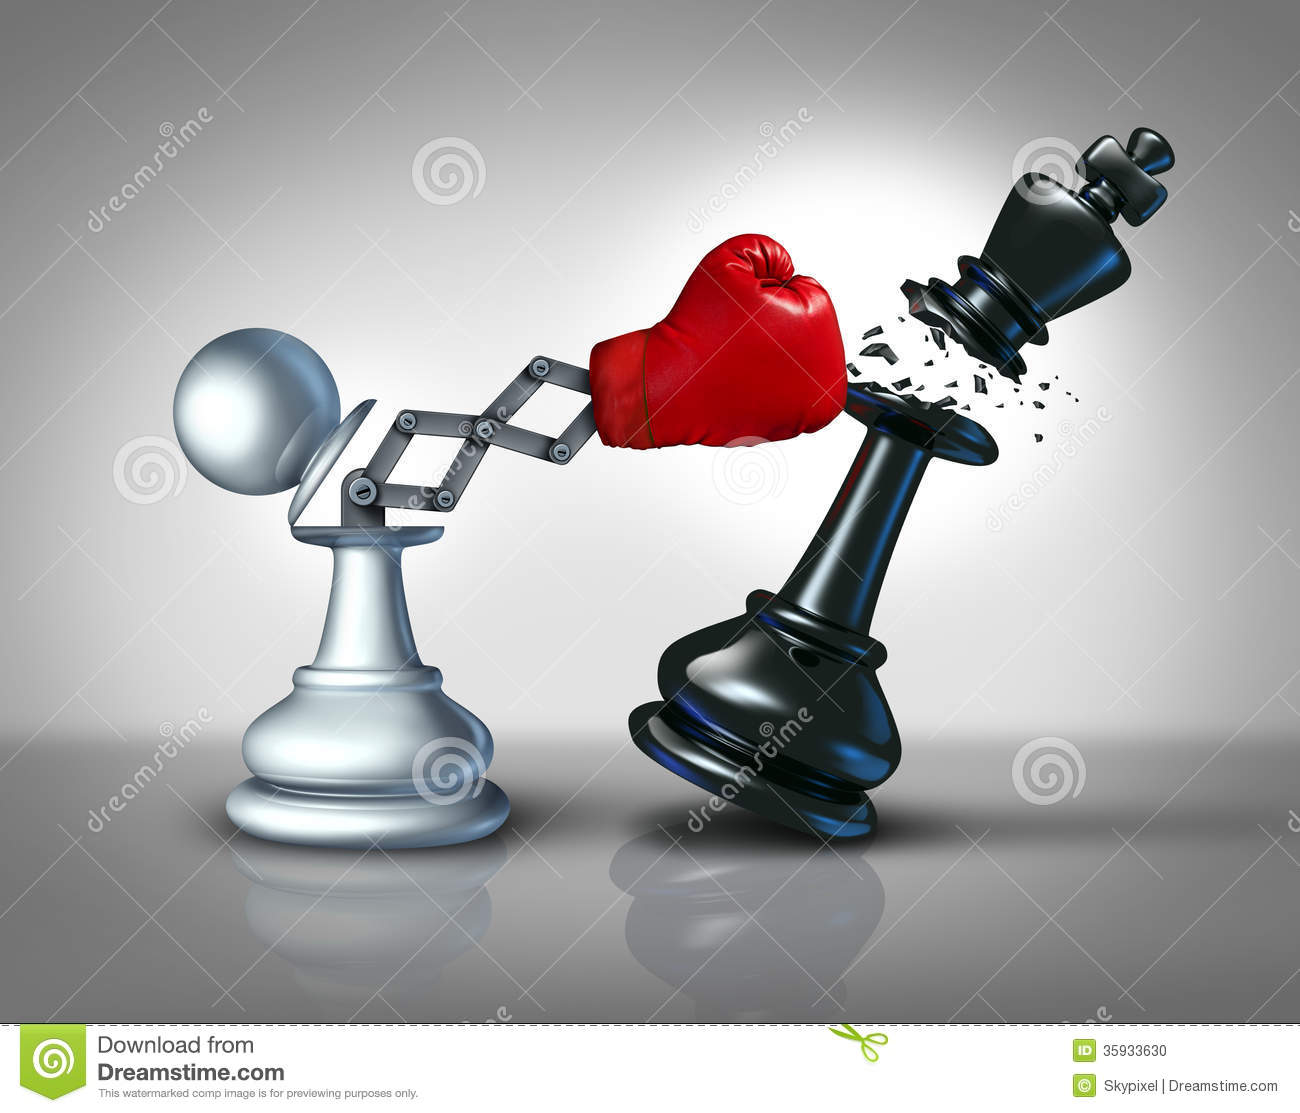 ... boxing glove as a metaphor for innovative corporate strategy and